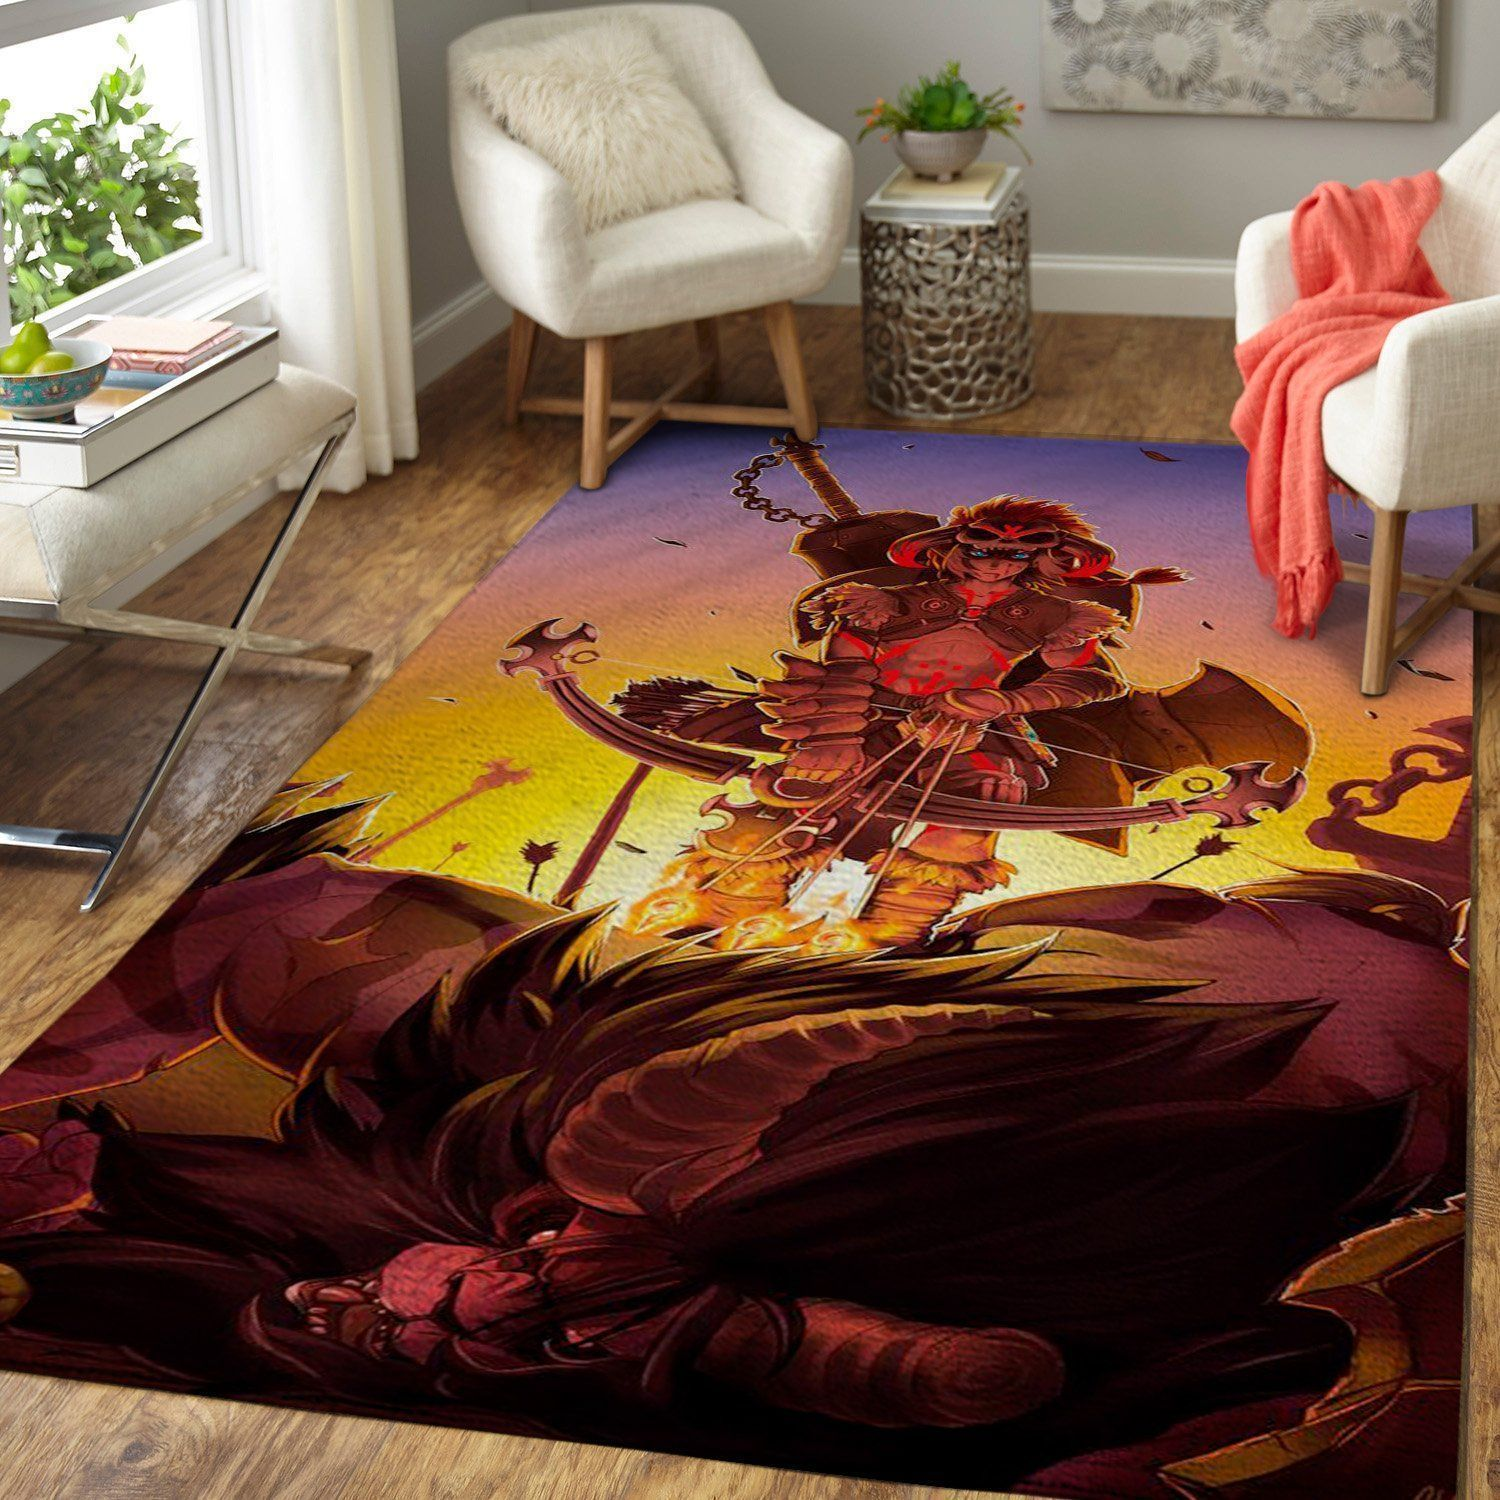 The Legend of Zelda Area Rug Nintendo Video Game Carpet, Gamer Living Room Rugs, Floor Decor 191013